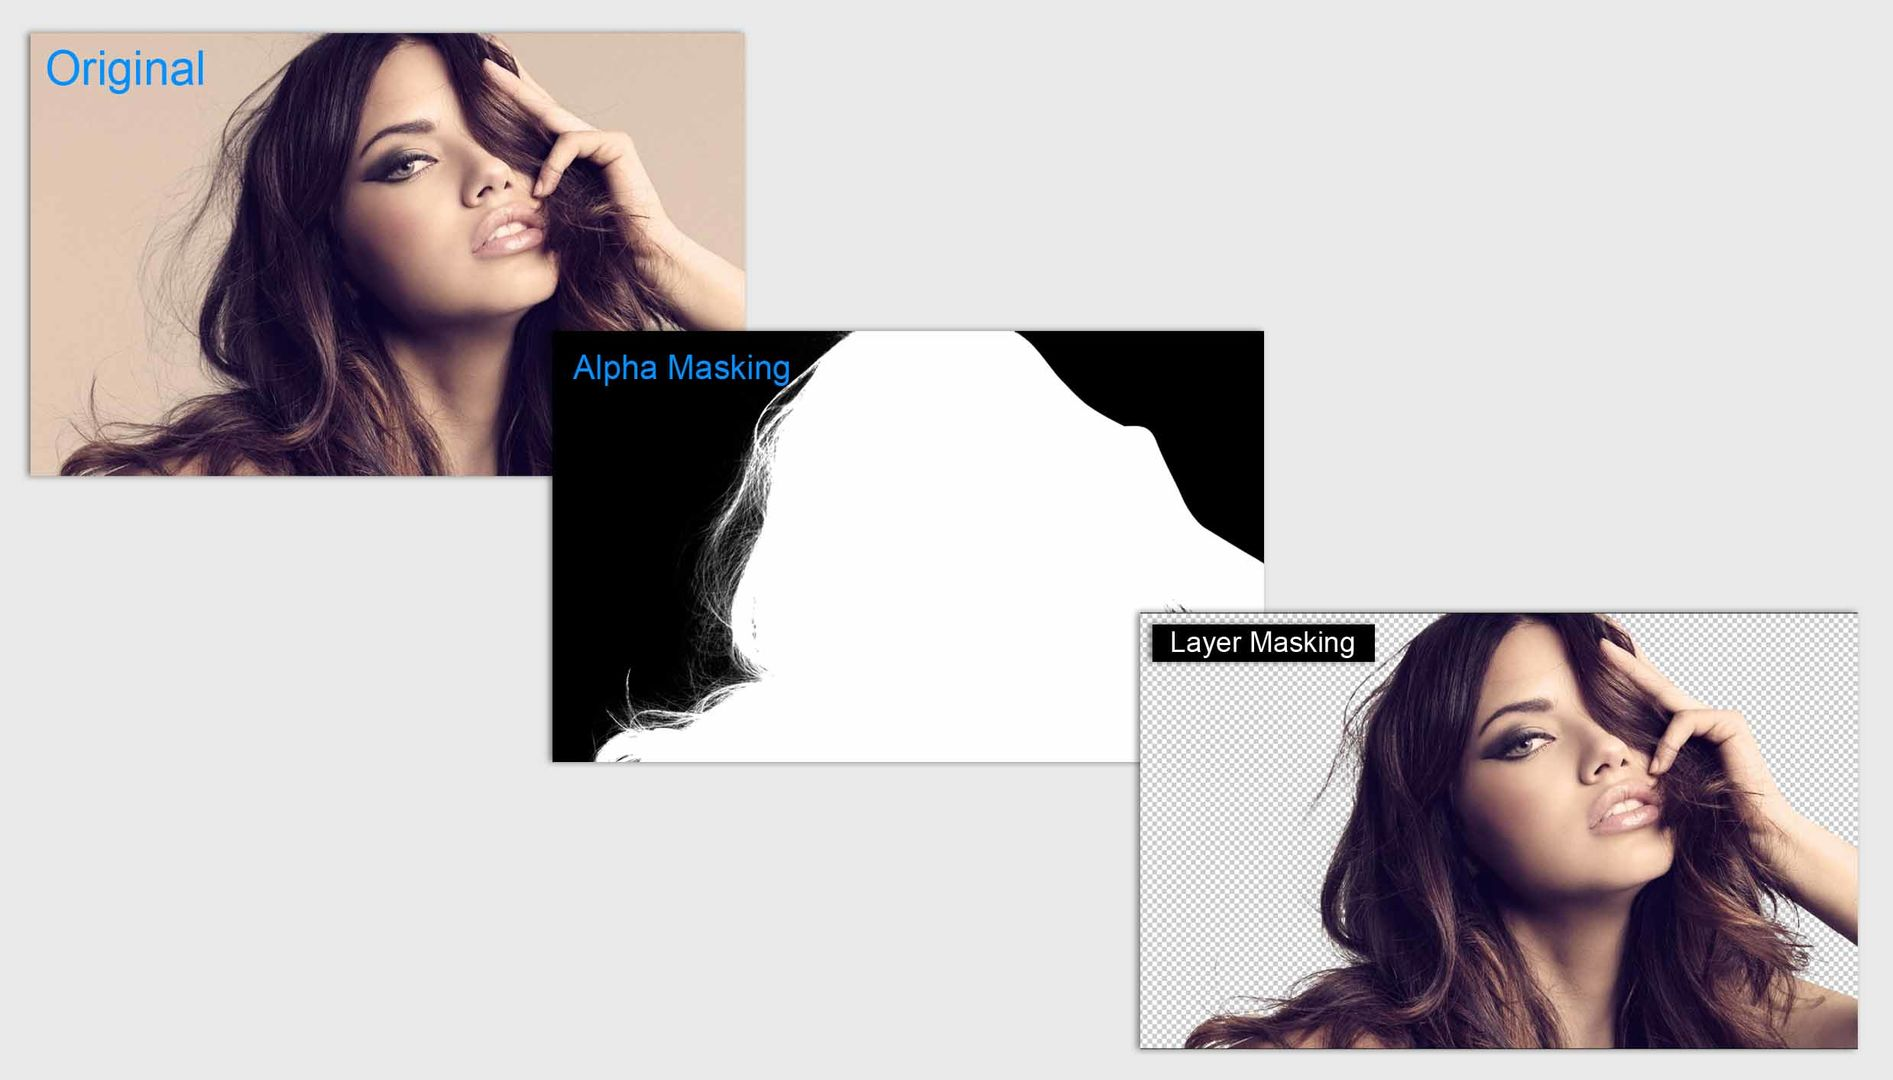 Image Masking Service | Photoshop Hair Alpha Layer Masking